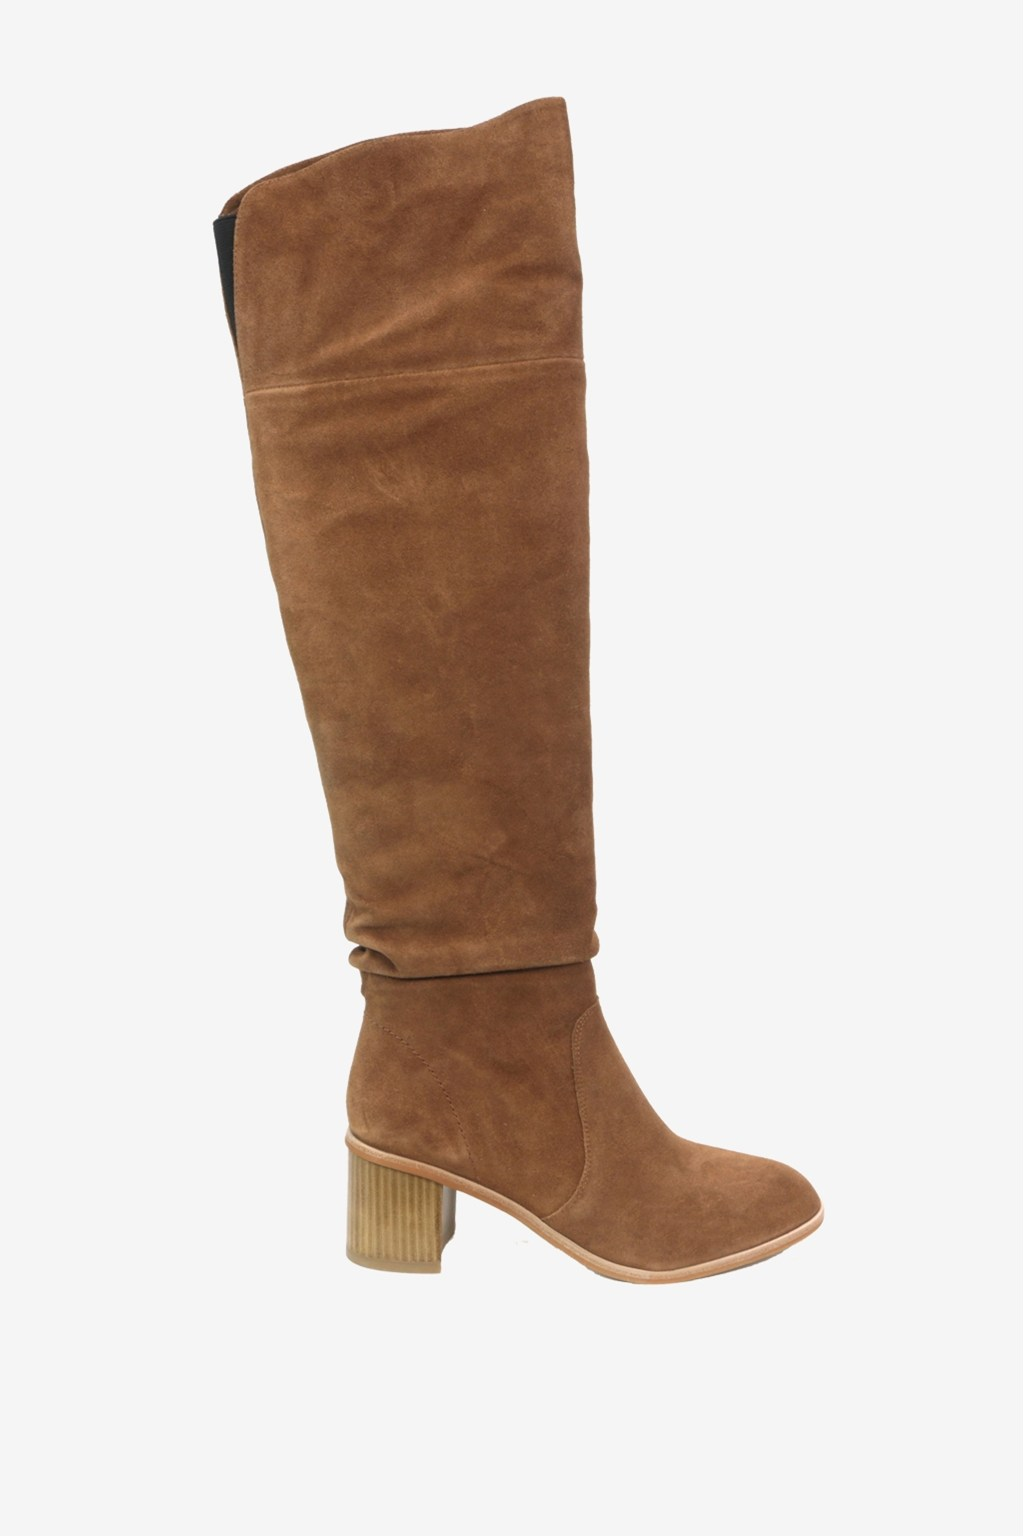 Clementina Boots